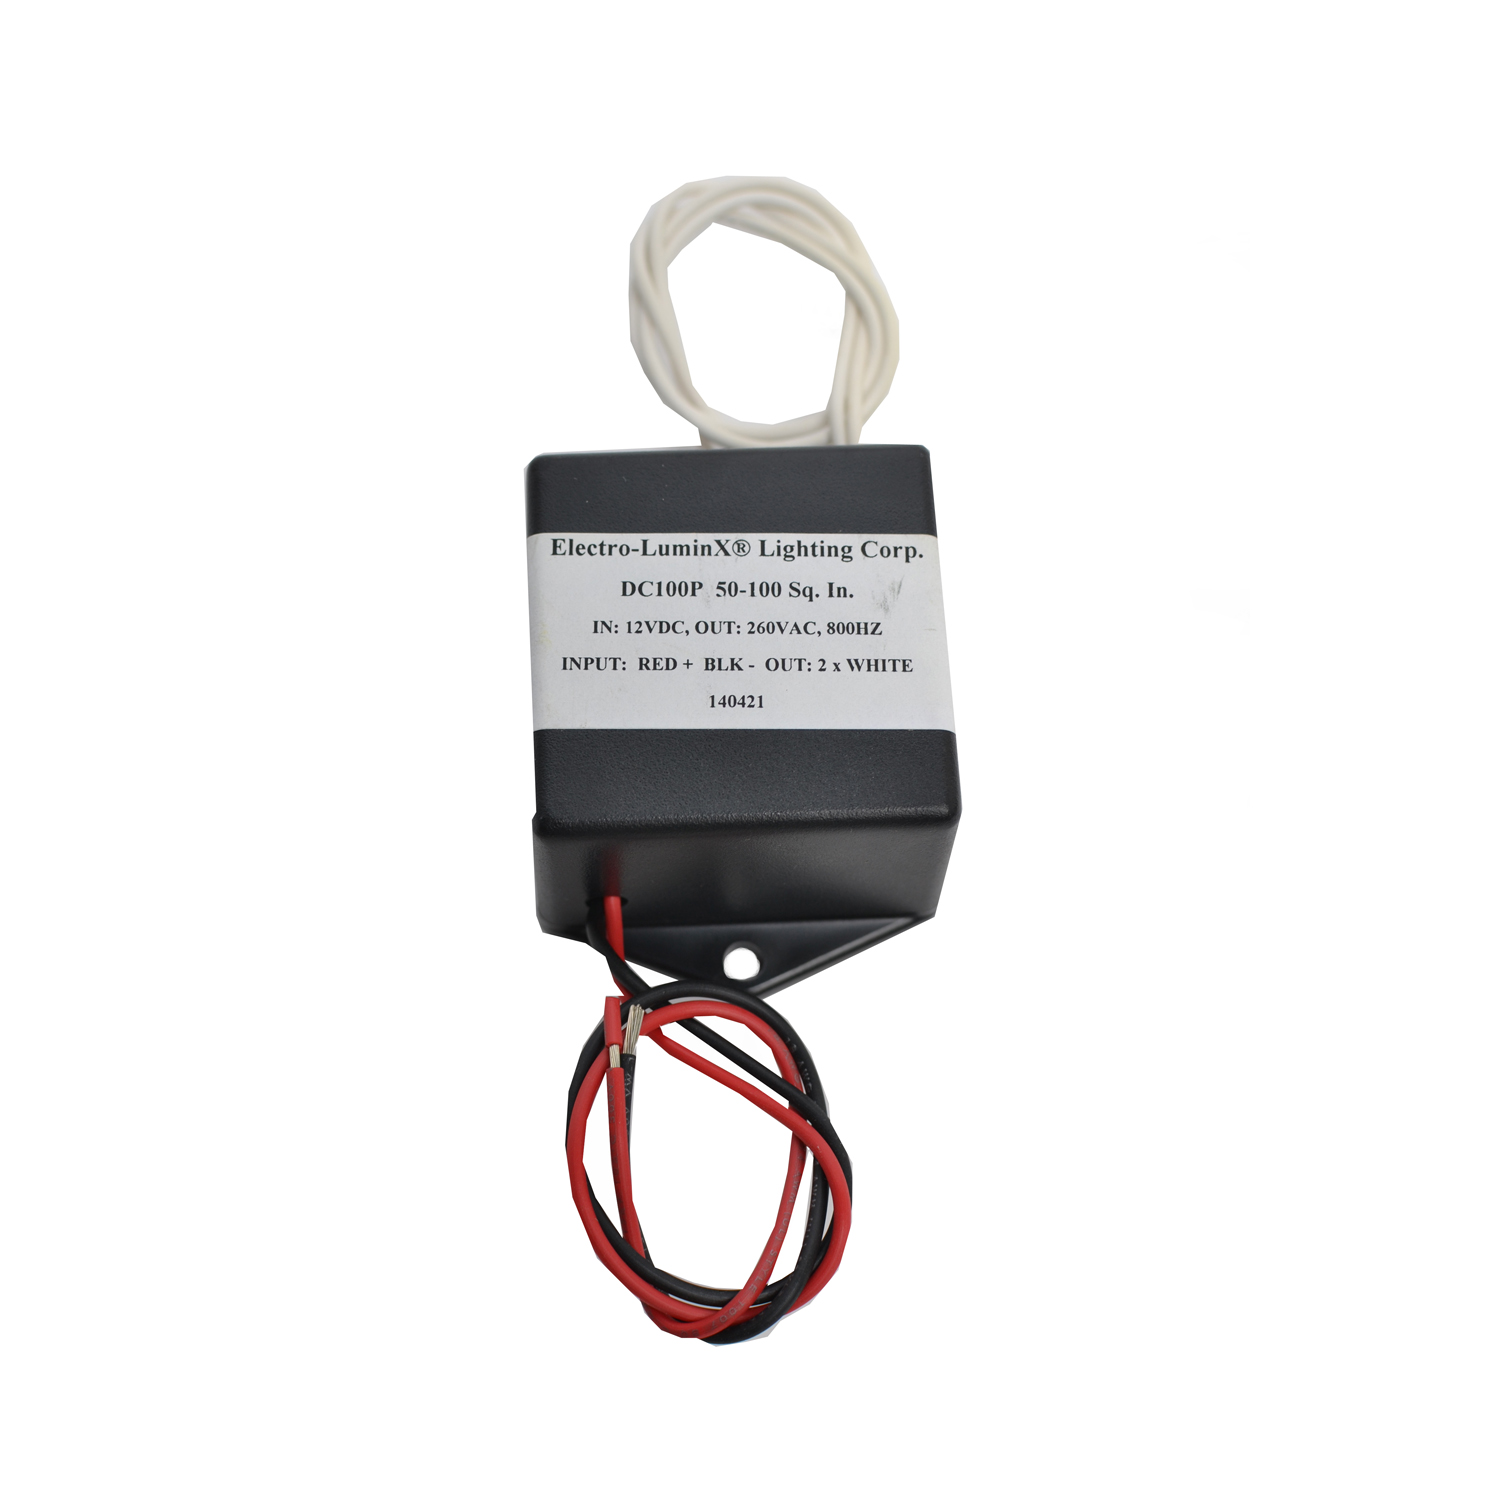 """Model DC-100P  Illuminated Area:45-80 sq. in. Input Current:~438 mA Input Voltage:12 VDC Output Voltage:200-300 VAC Dimensions:2.87"""" x 2"""" x 1.47"""" Weight:0.45 lbs (7.2 oz)"""